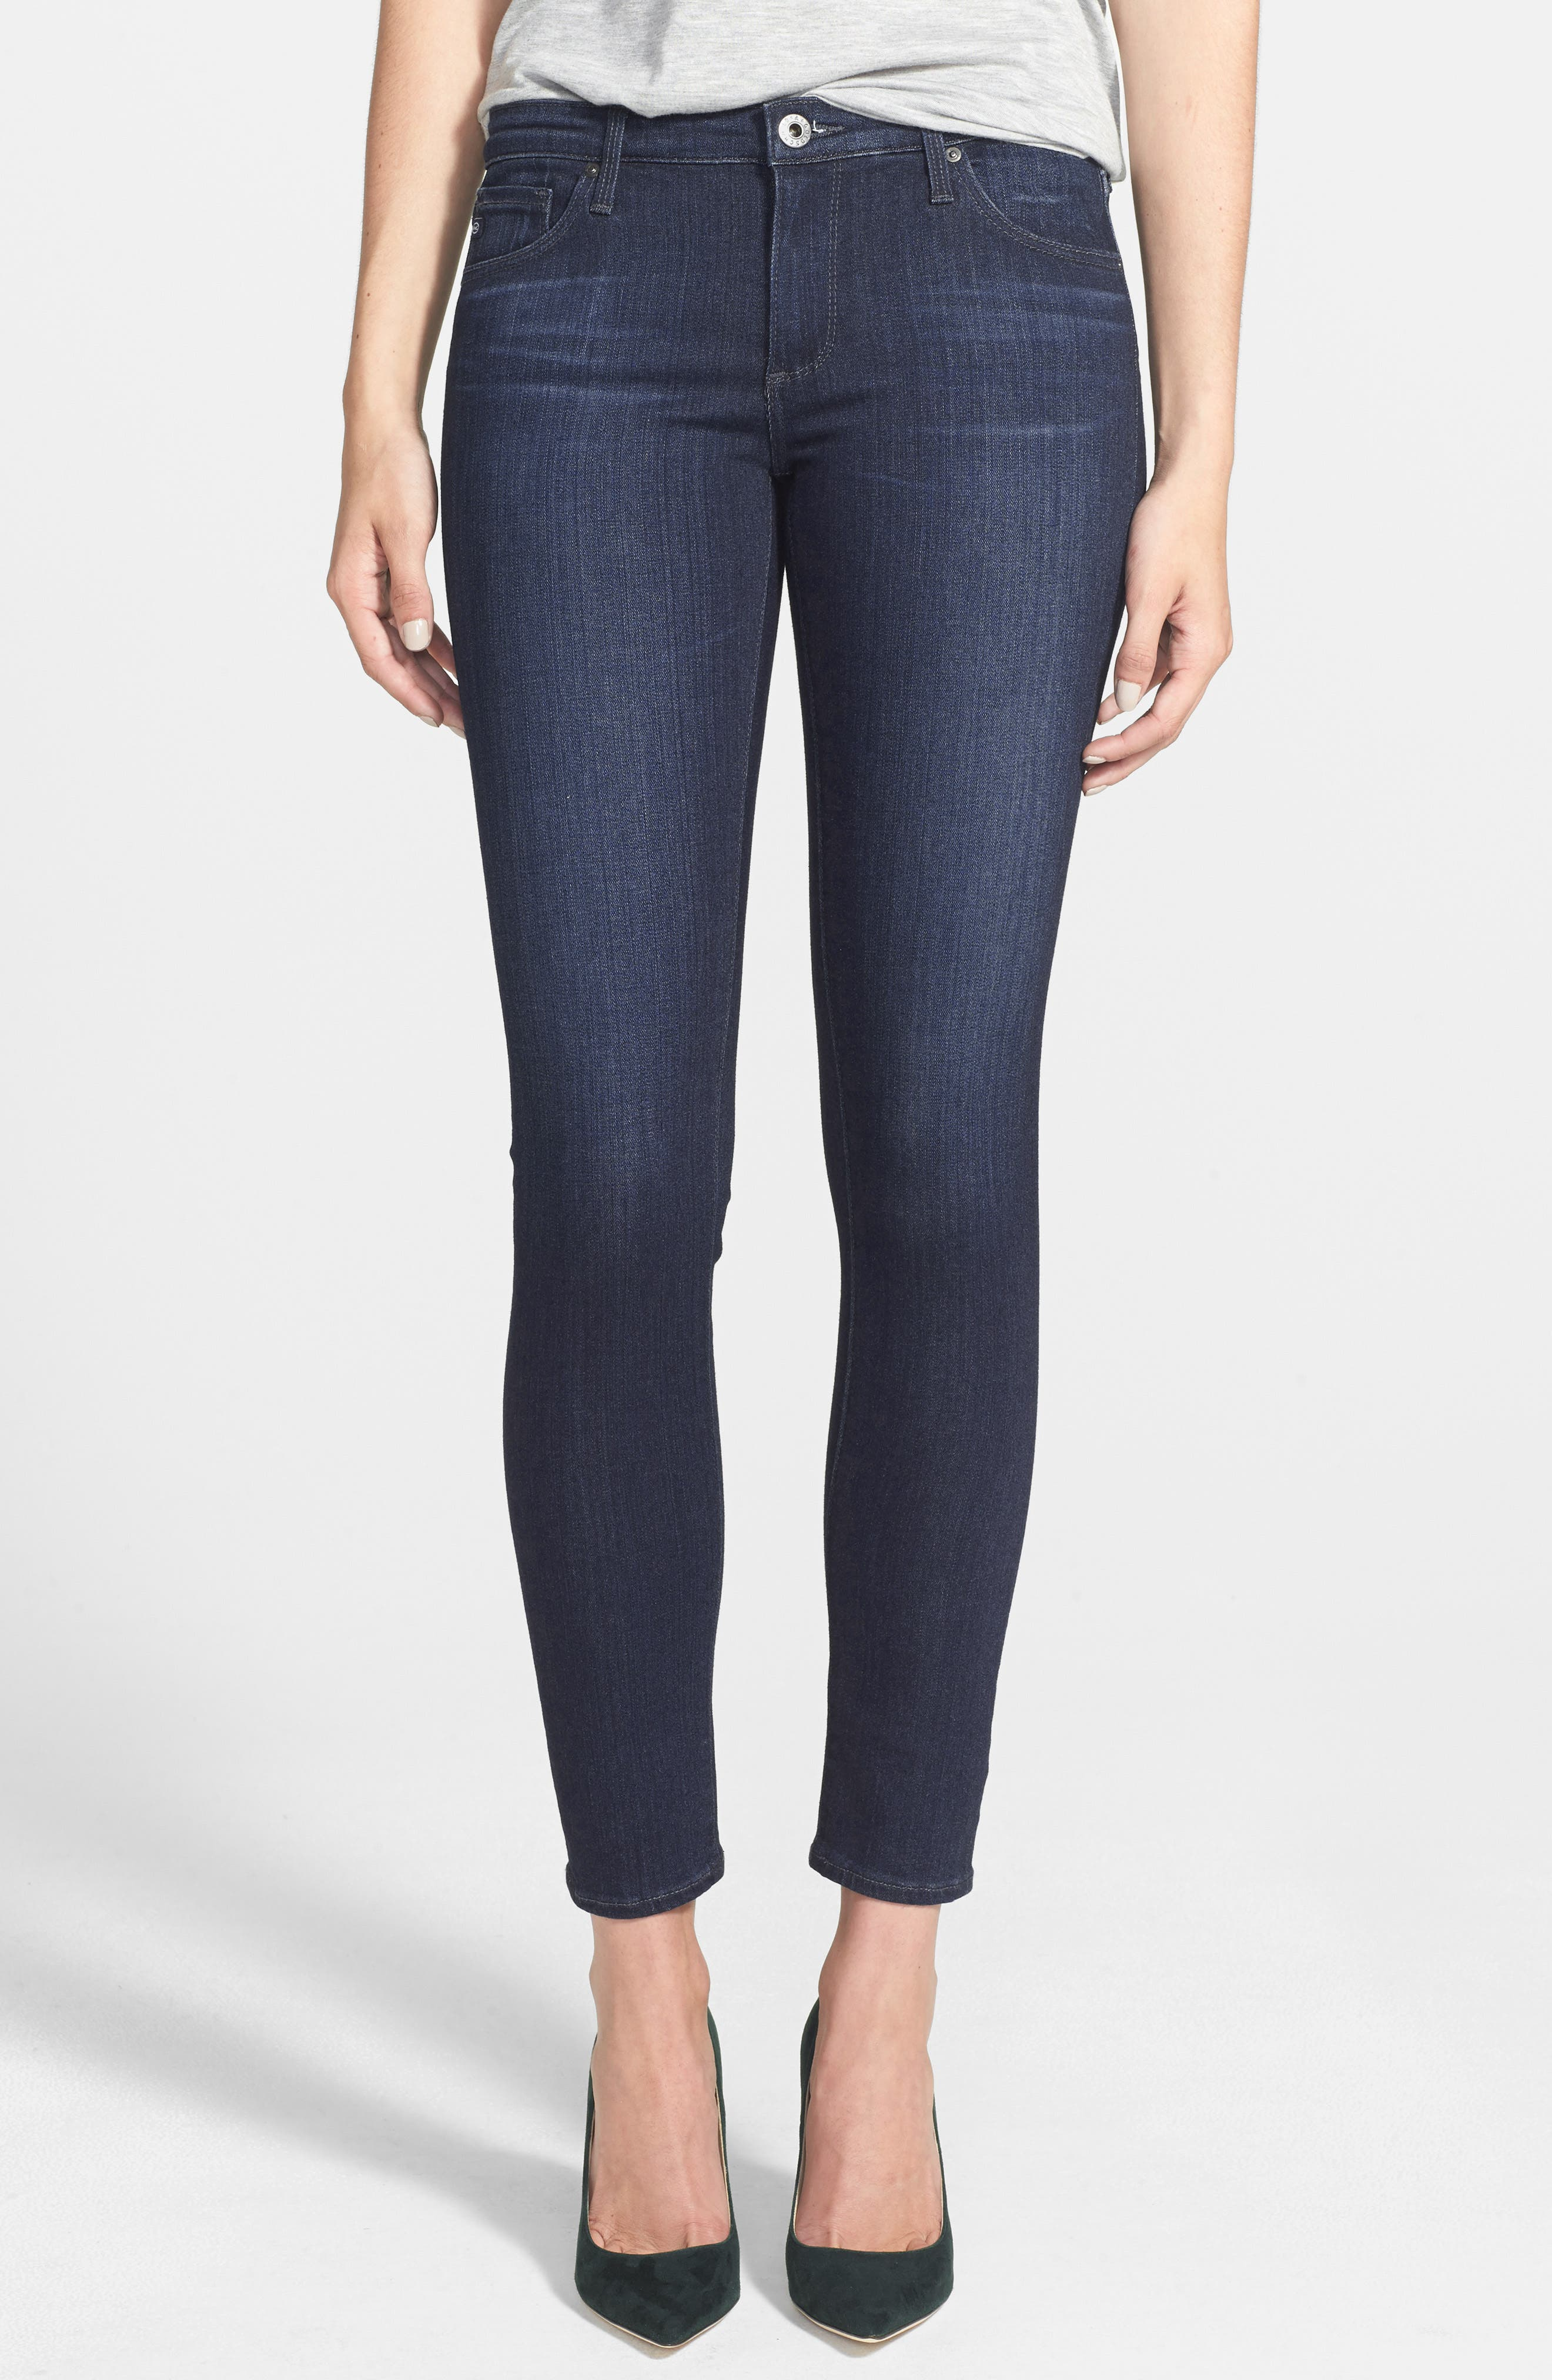 AG, The Legging Ankle Super Skinny Jeans, Main thumbnail 1, color, COAL BLUE